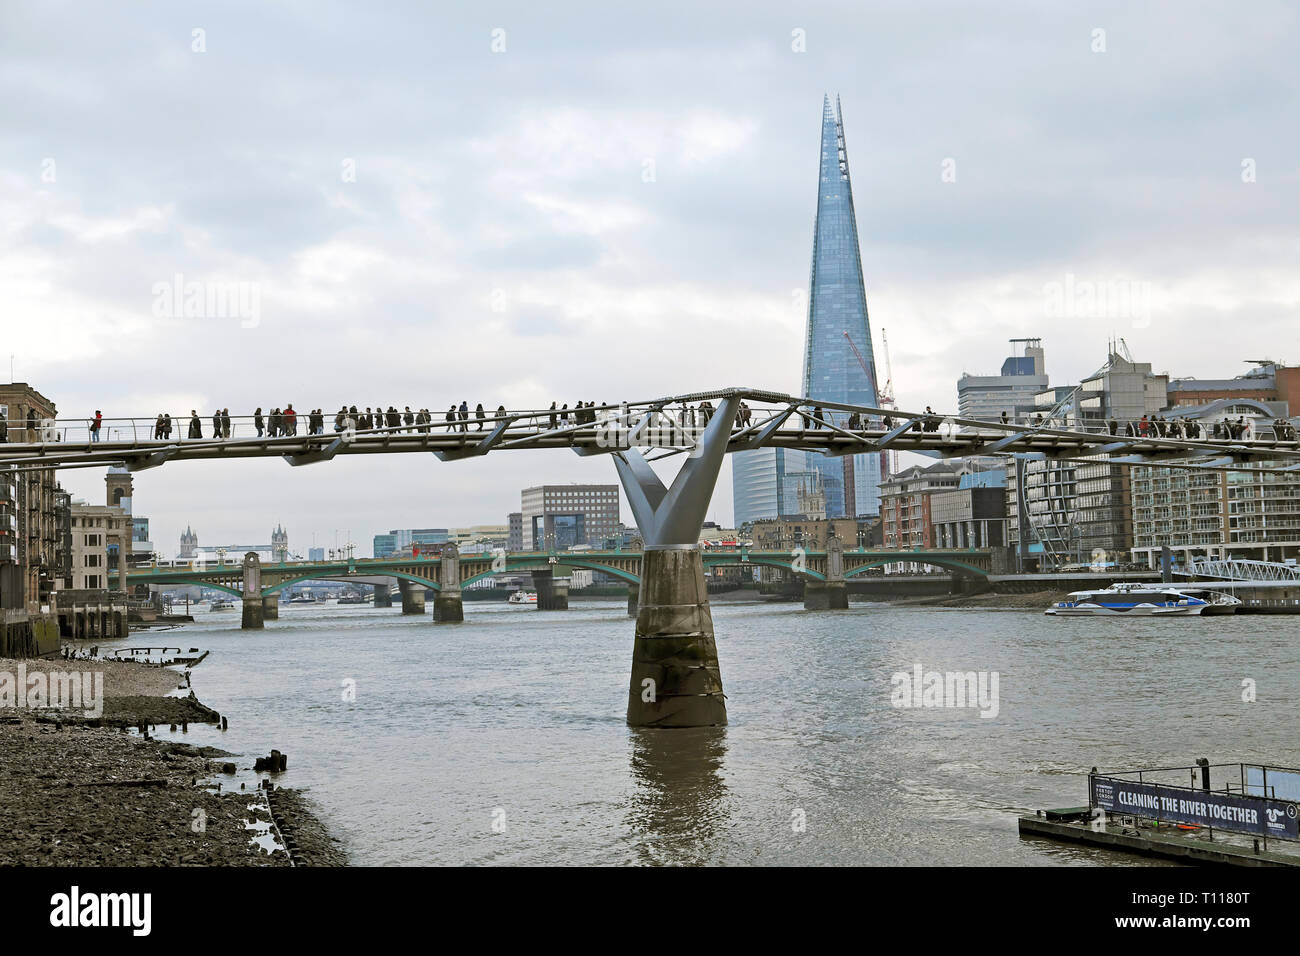 A view of the Shard building South Bank, London cityscape and people walking on the Millennium Bridge over the River Thames in winter UK KATHY DEWITT - Stock Image